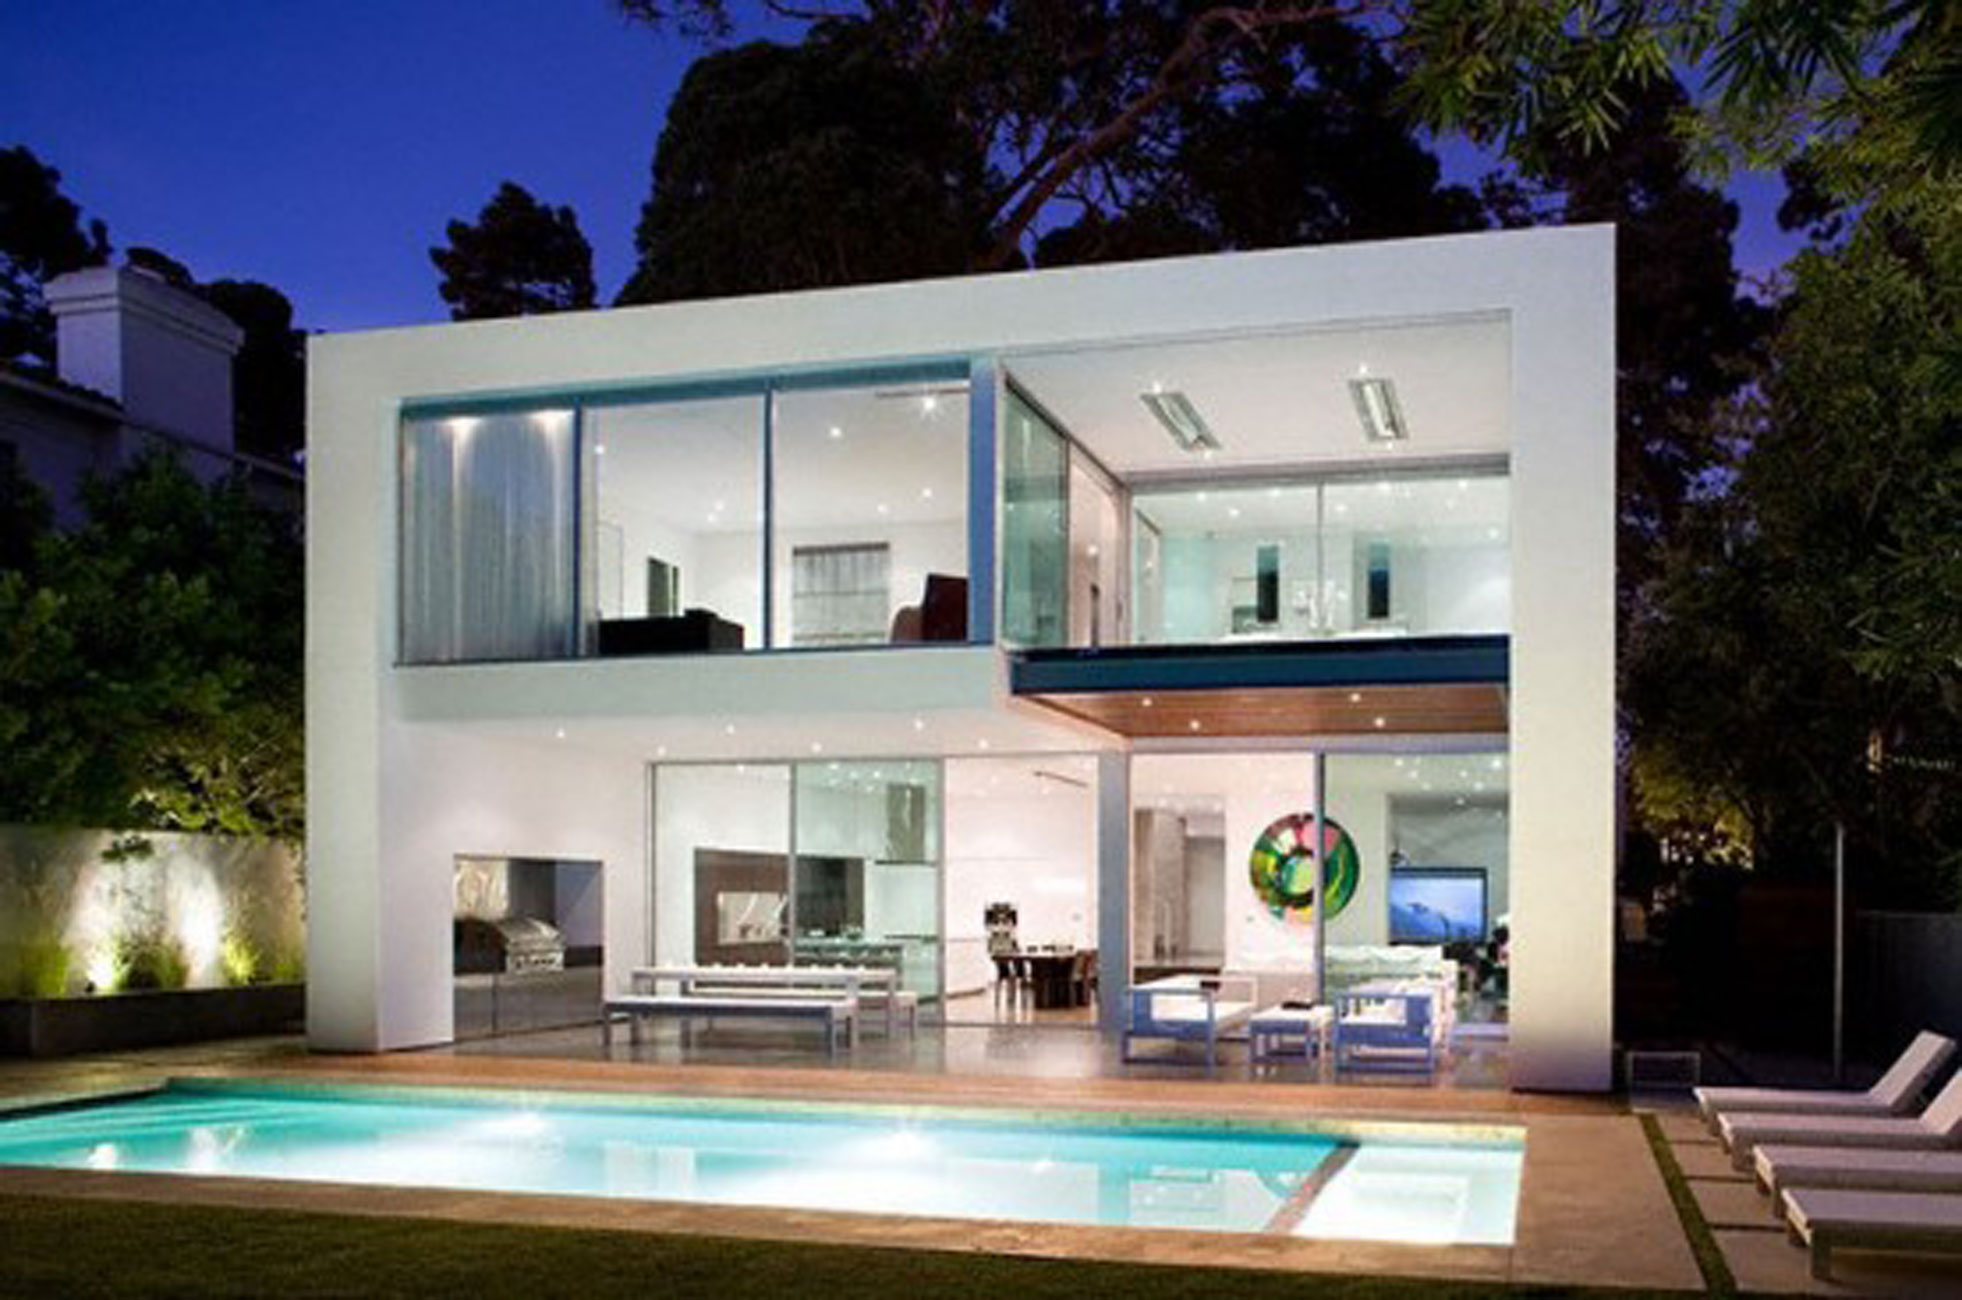 Modern Home Design: 25 Awesome Examples Of Modern House